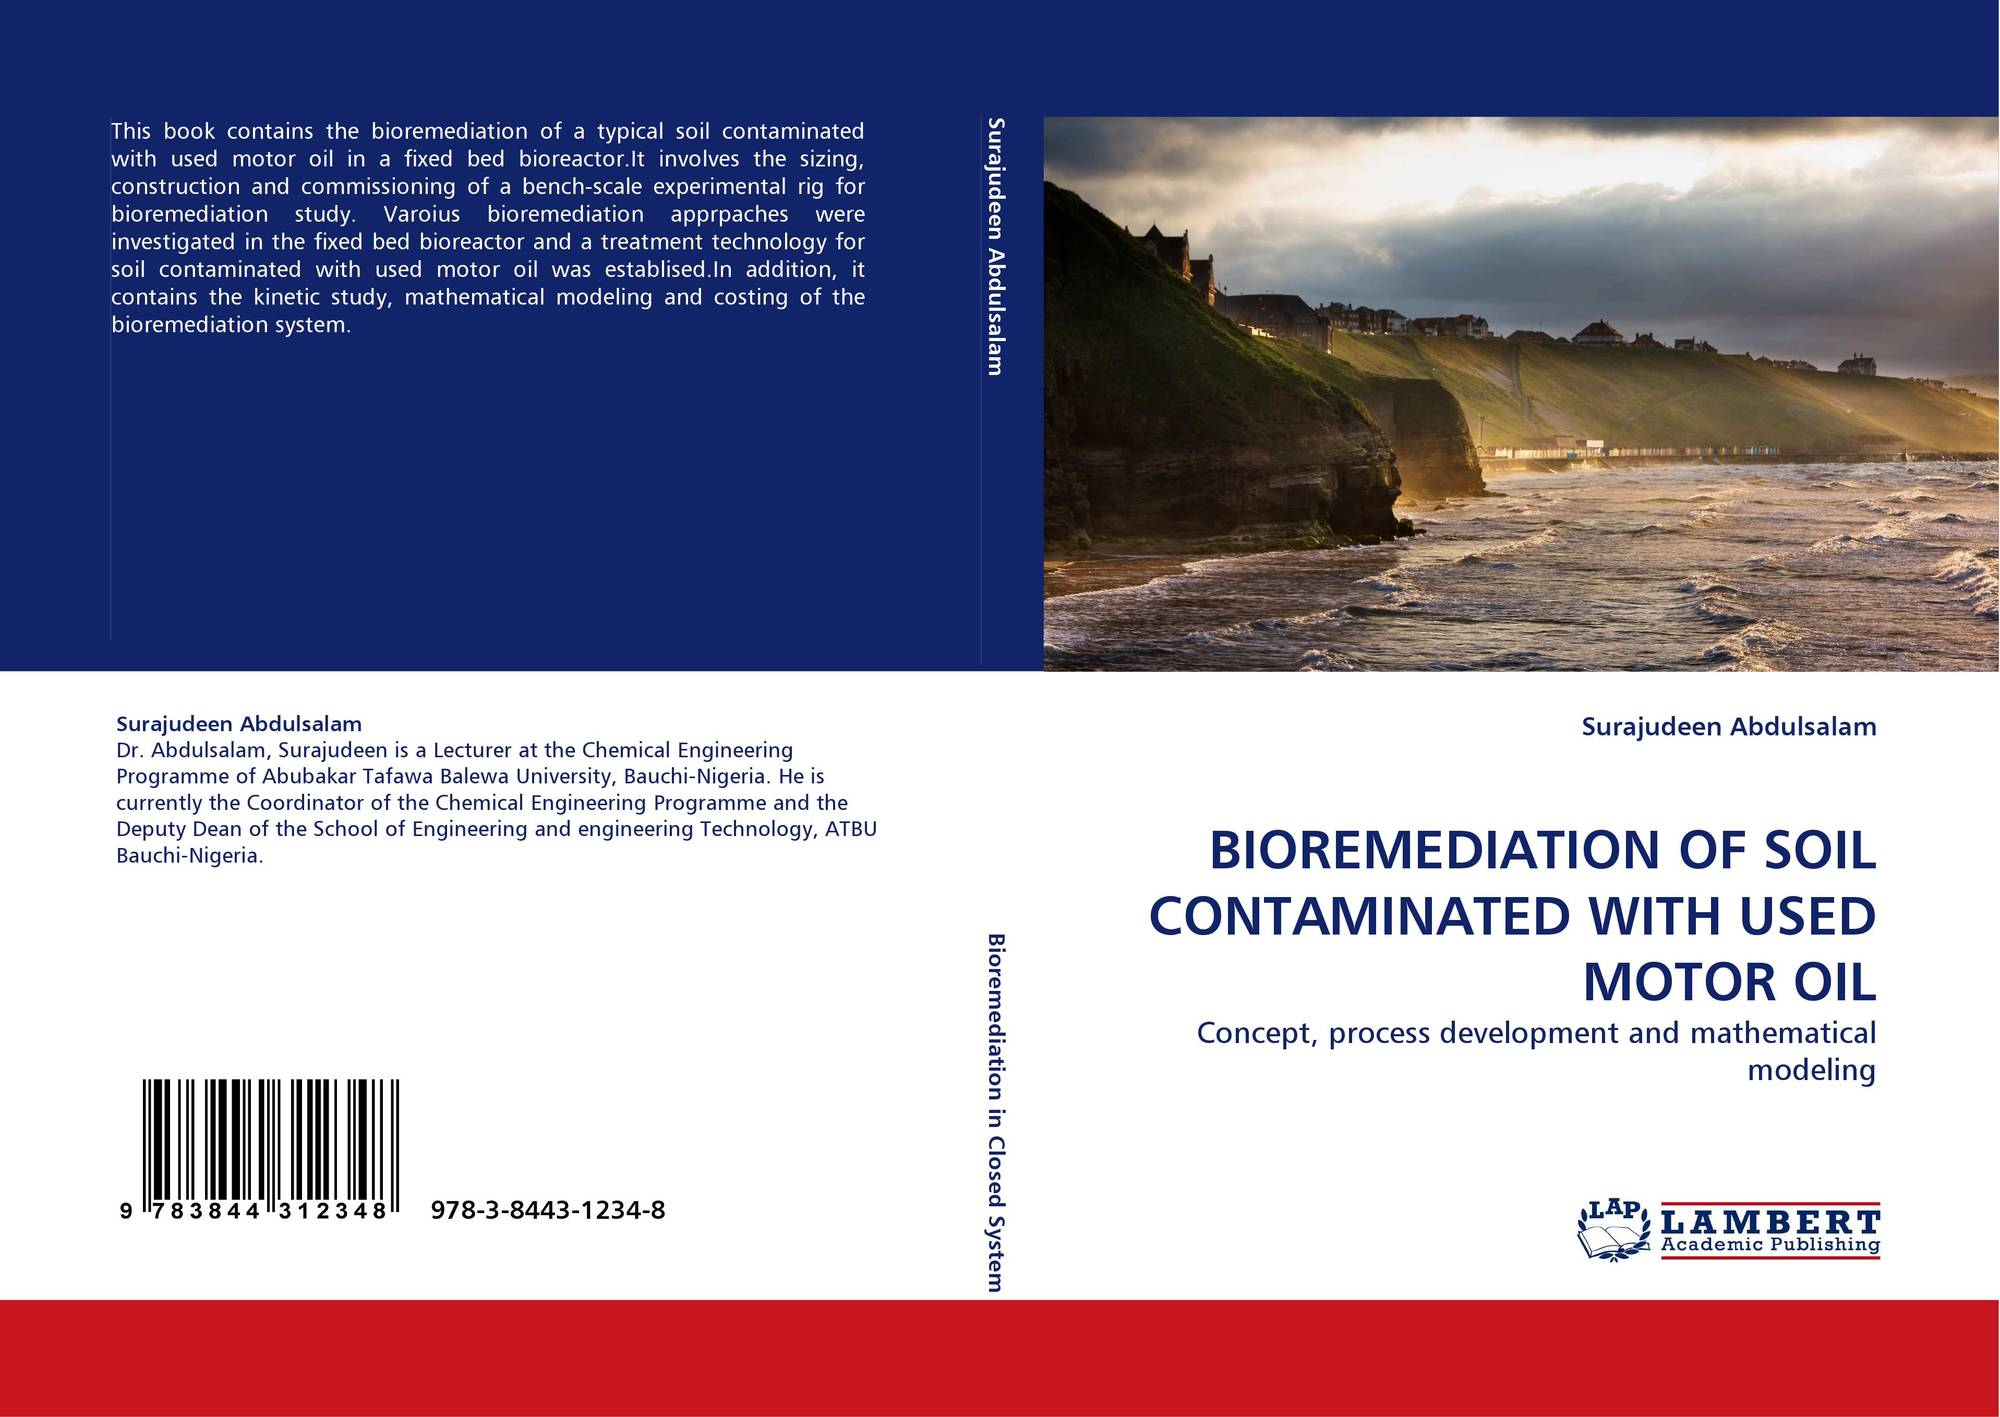 an analysis of the bioremeditation of explosives in contaminated soil